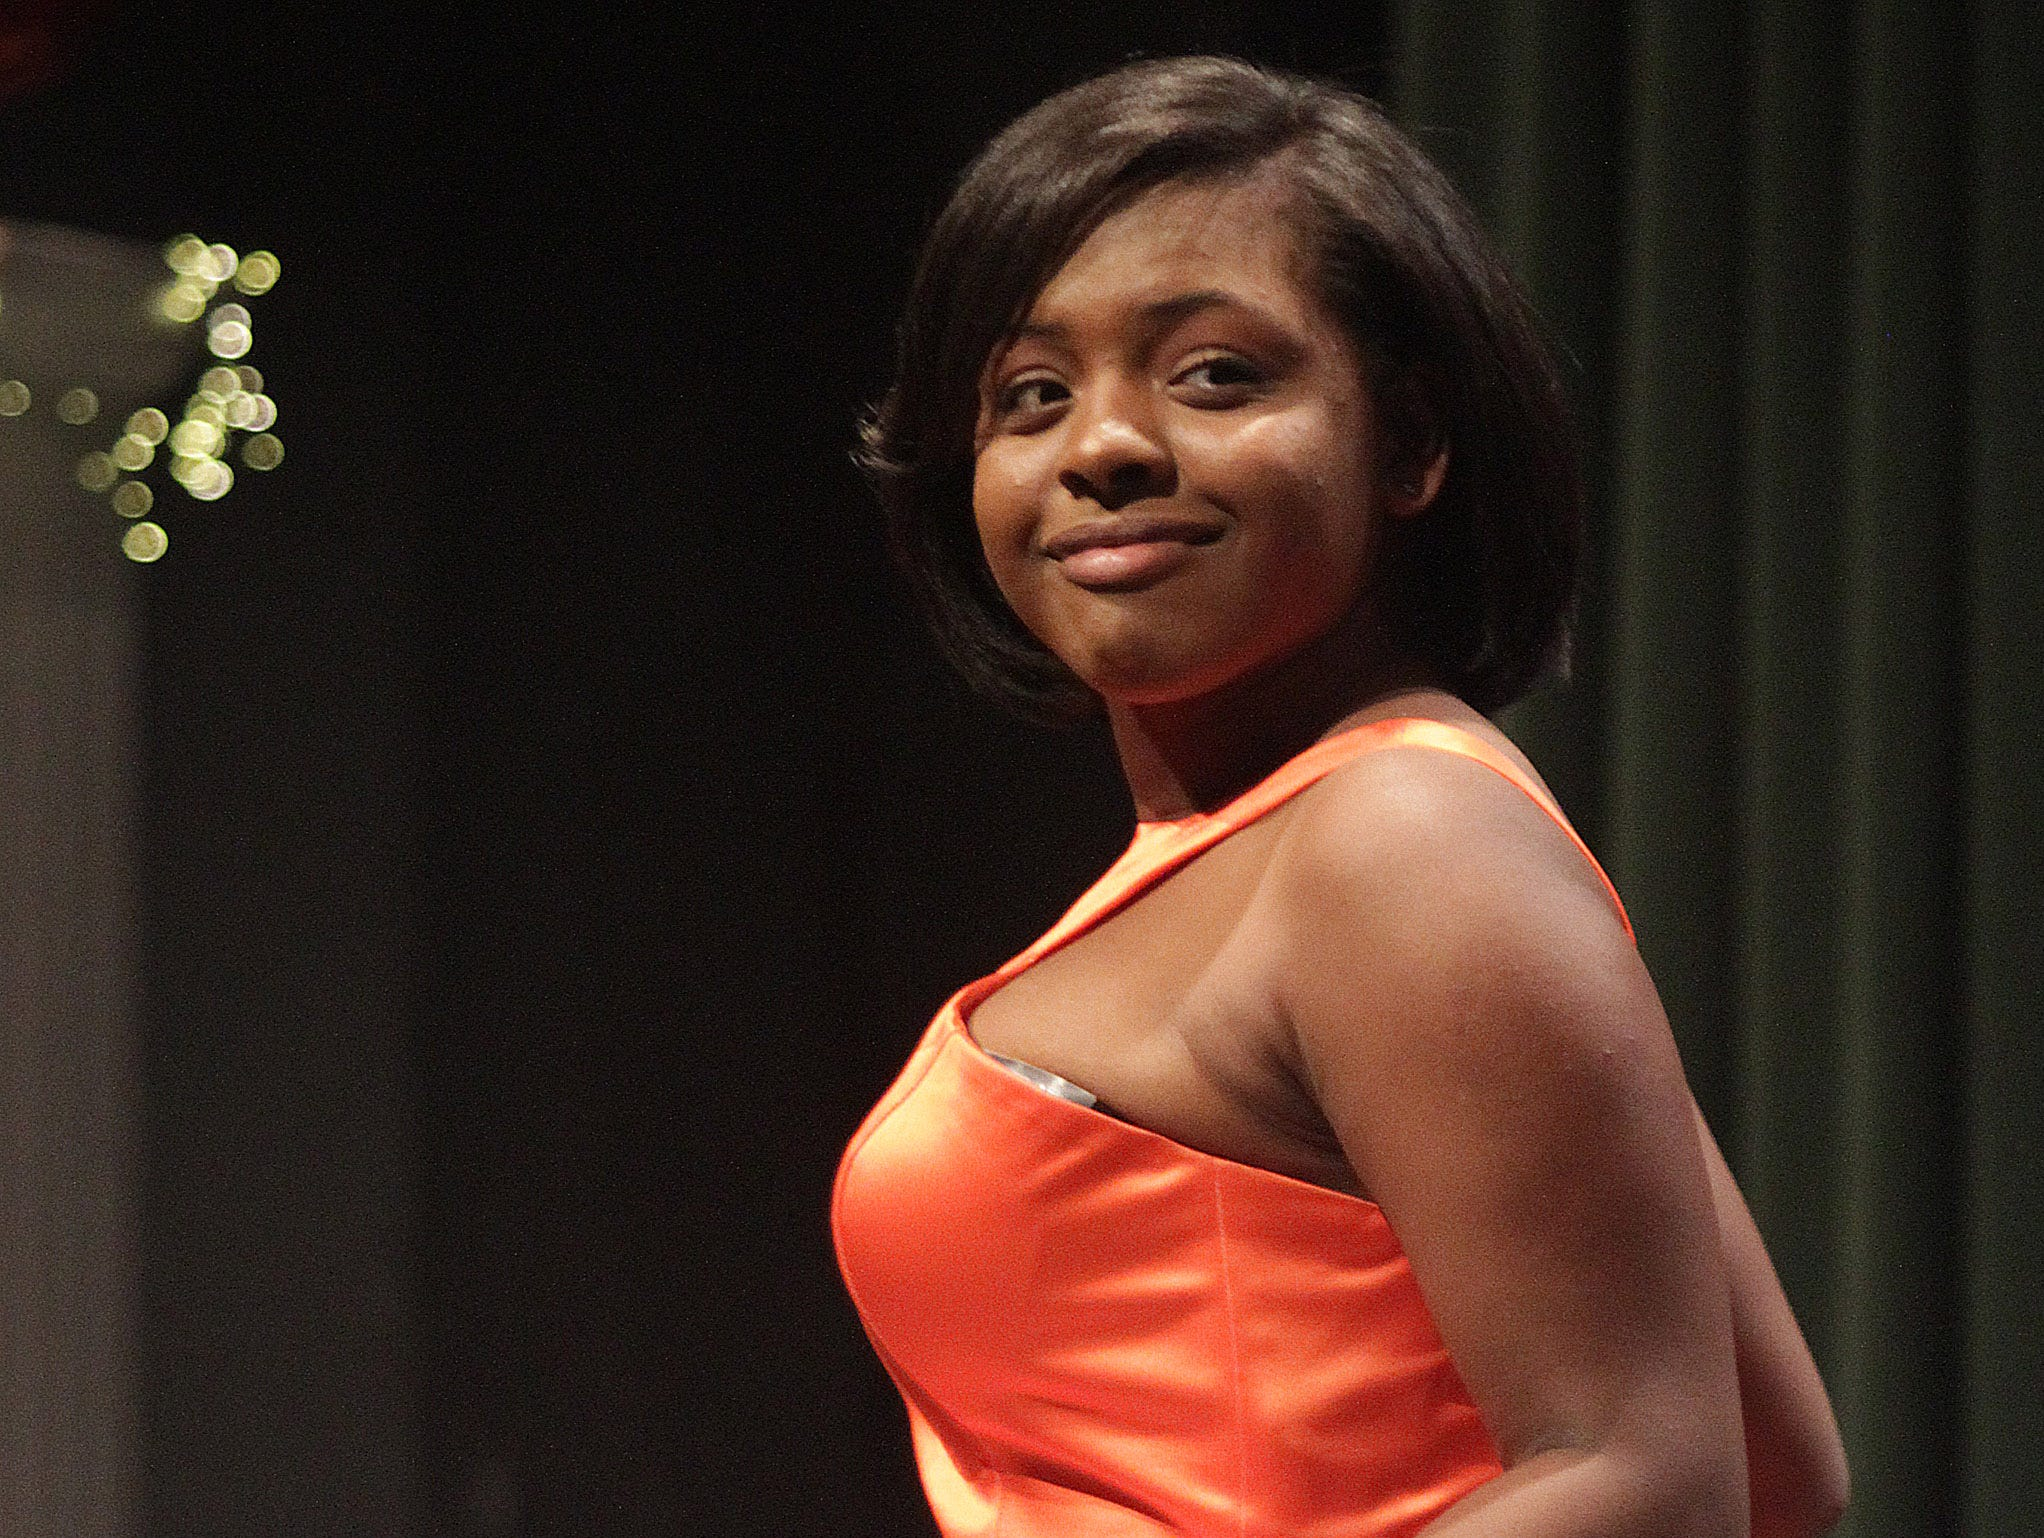 Aniya Patton hits the stage at Gallatin High's Annual Prom Show on Saturday, February 2, 2019.